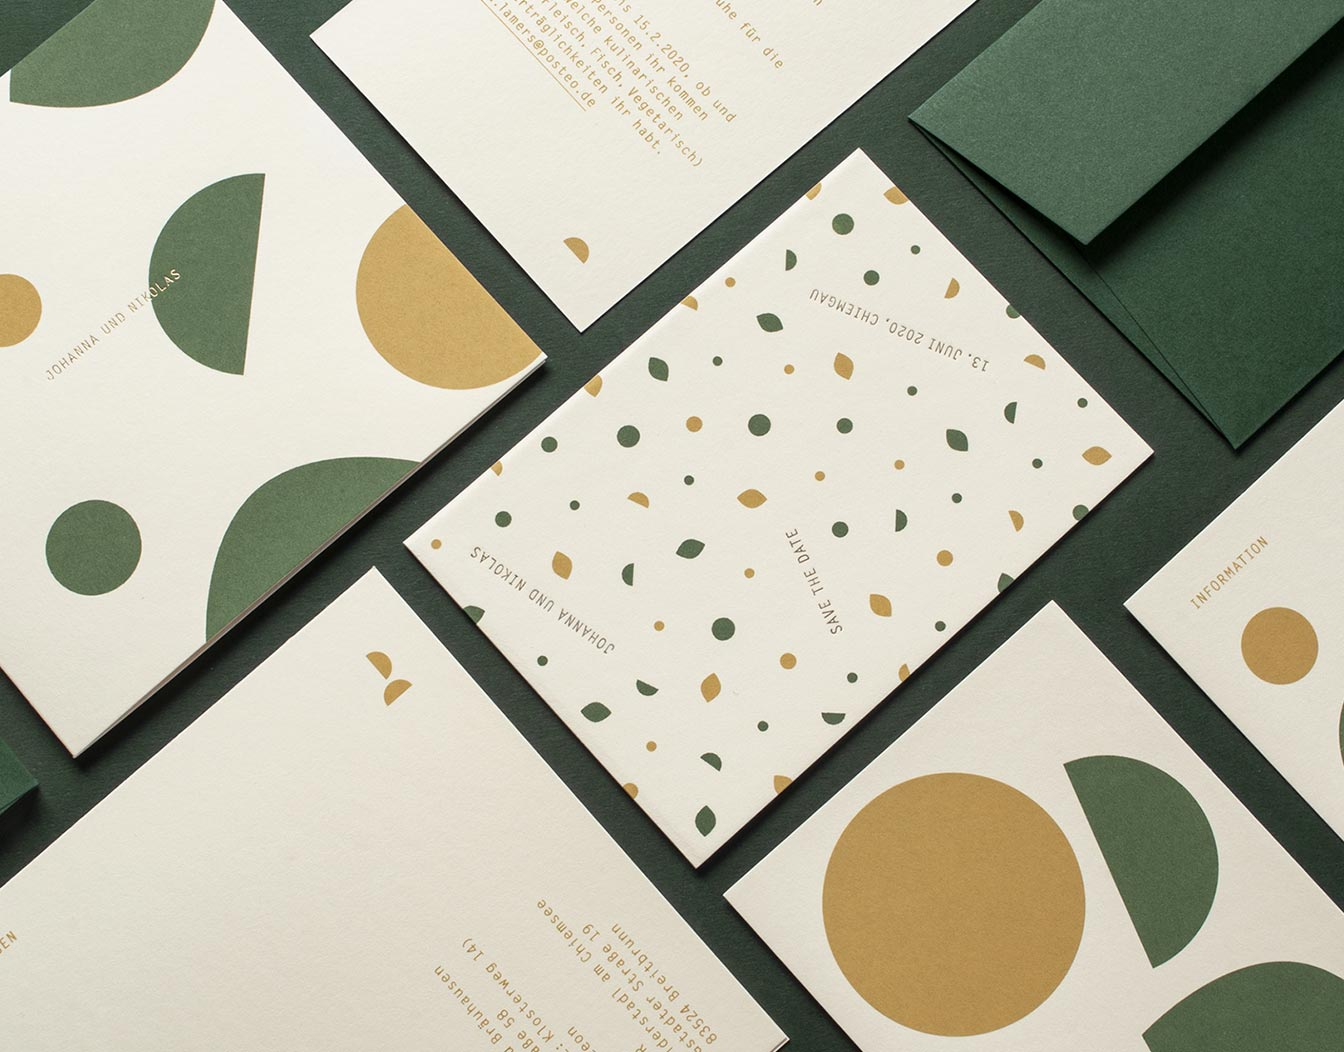 New year cards with geometric pattern in green and beige